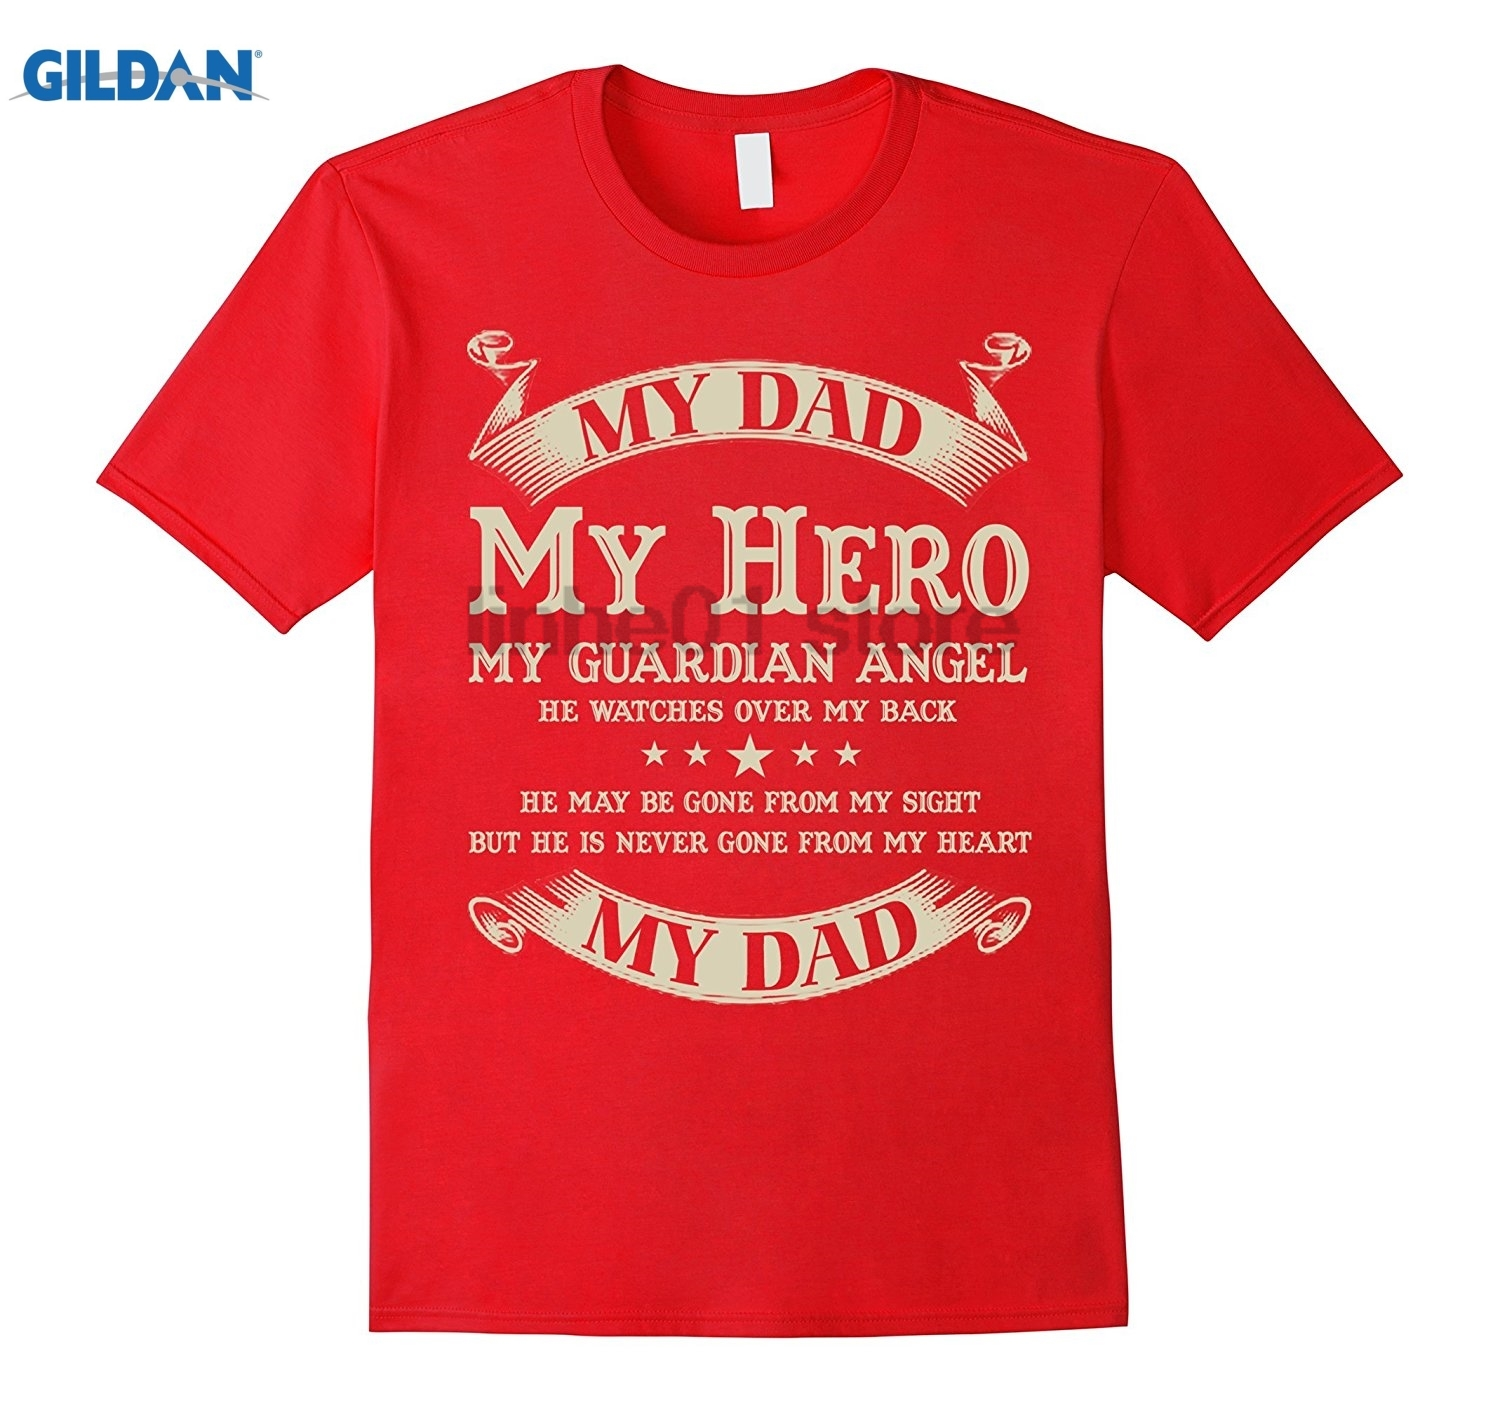 GILDAN Dad T-shirt , My Dad My hero My guardian angel He watches ov Womens T-shirt sunglasses women T-shirt